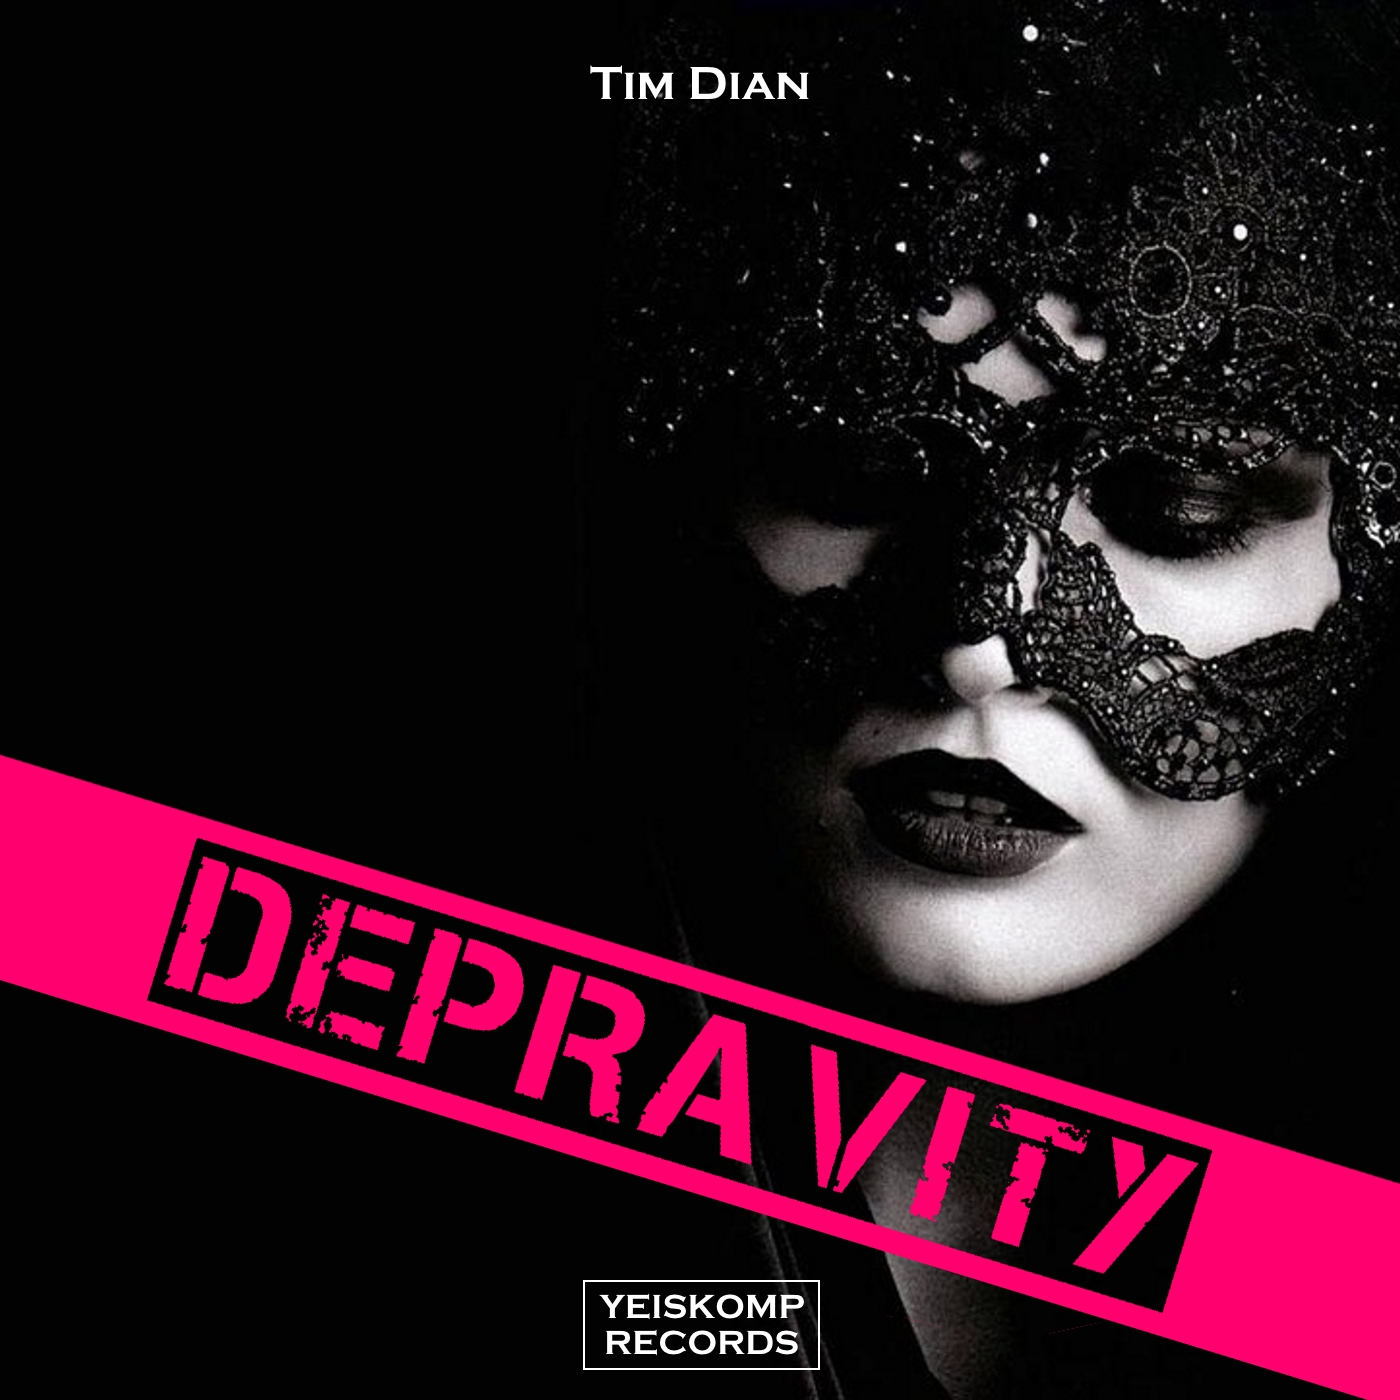 Tim Dian - Depravity (Original Mix)